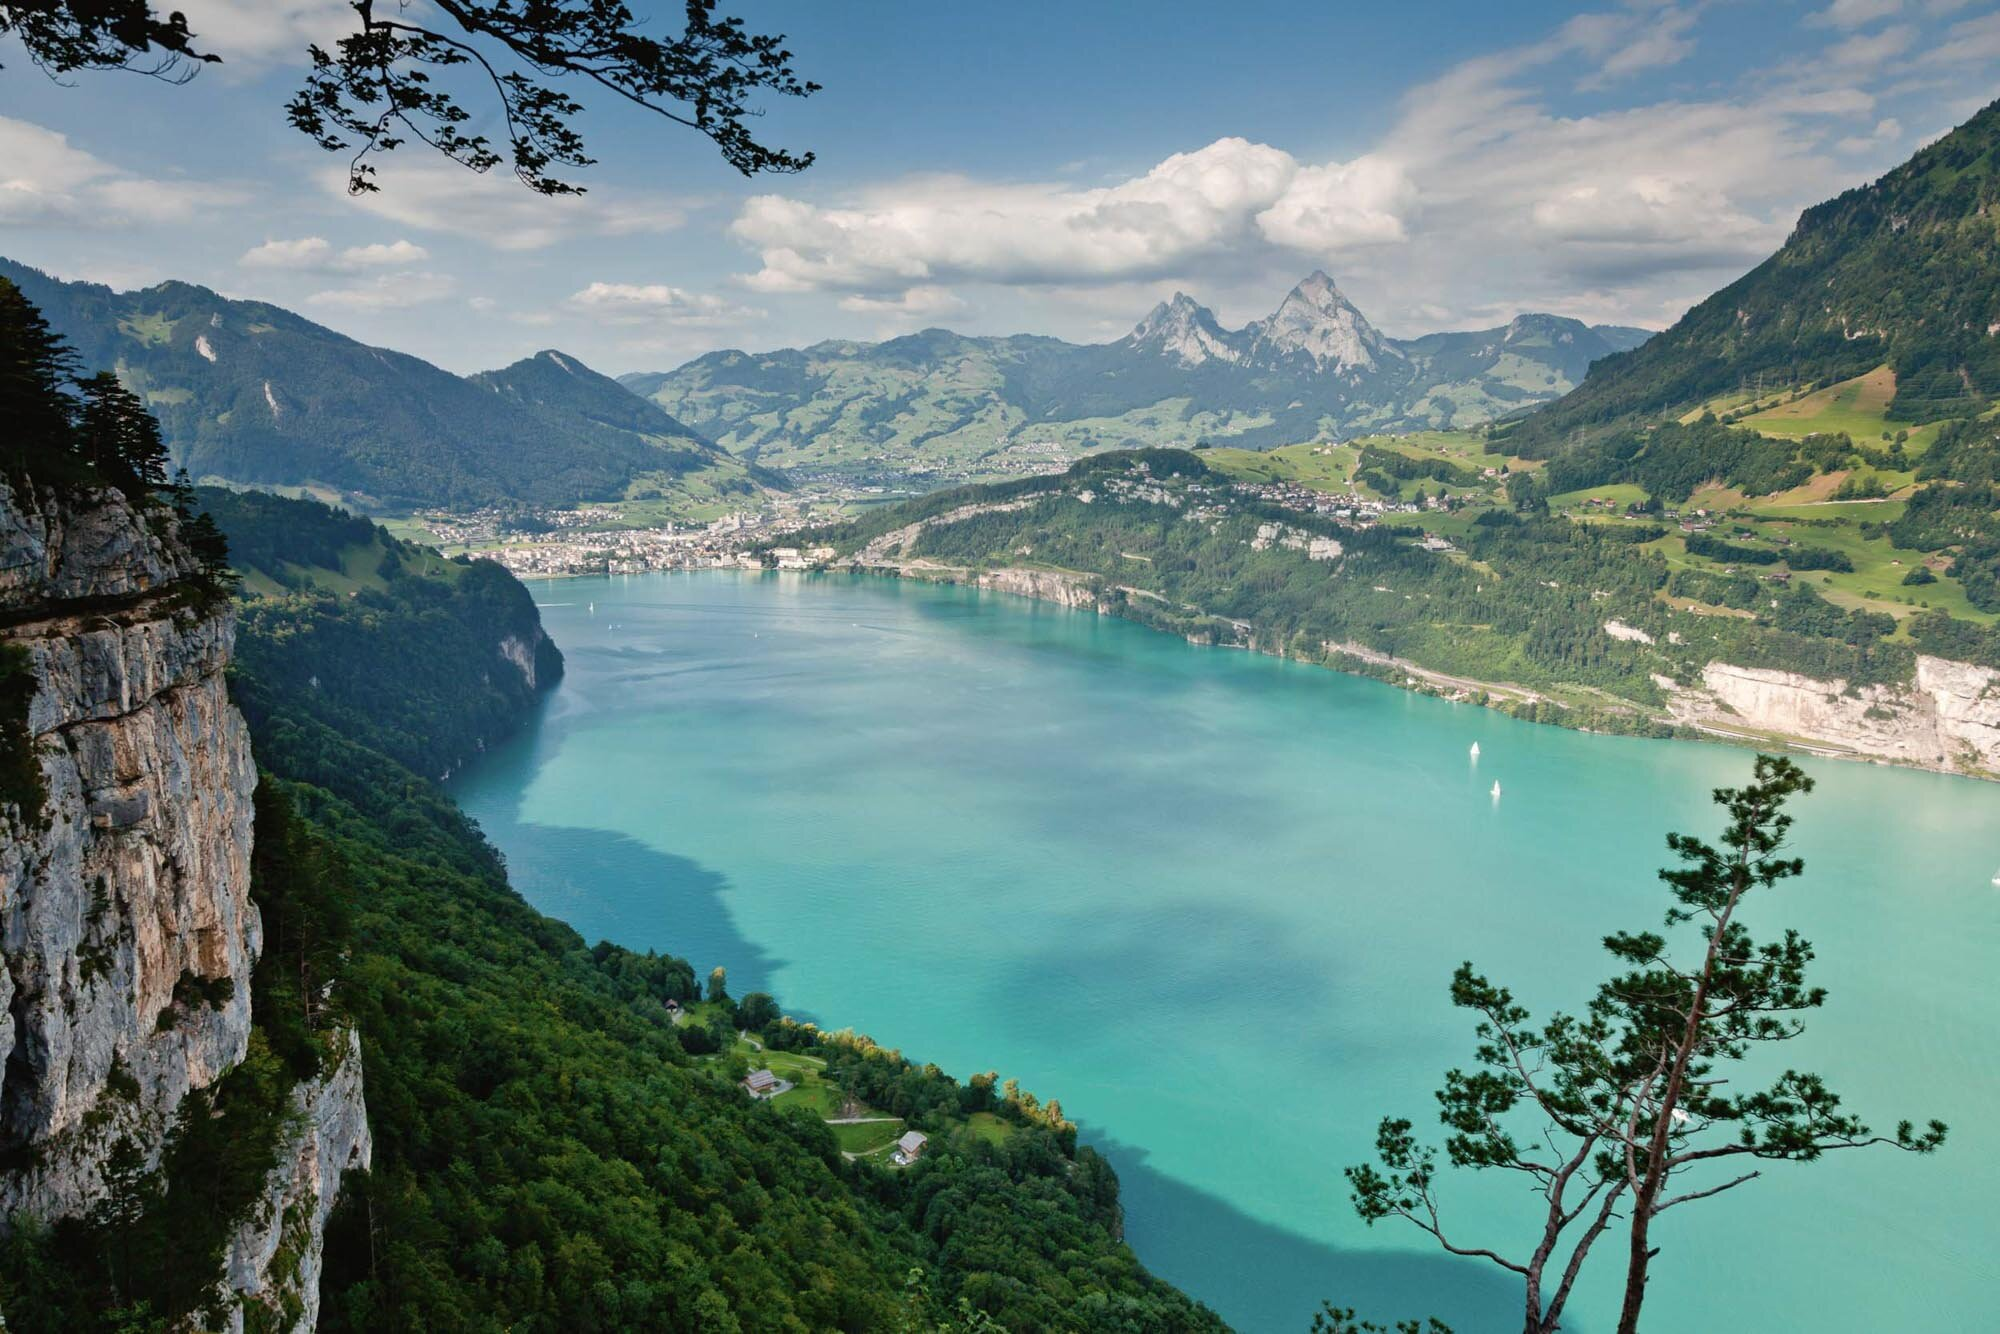 Looking over Lake Lucerne with Brunnen and the myths in the background. On the right the Axenstrasse and on the left the Ruetli. Copyright by: Switzerland Tourism